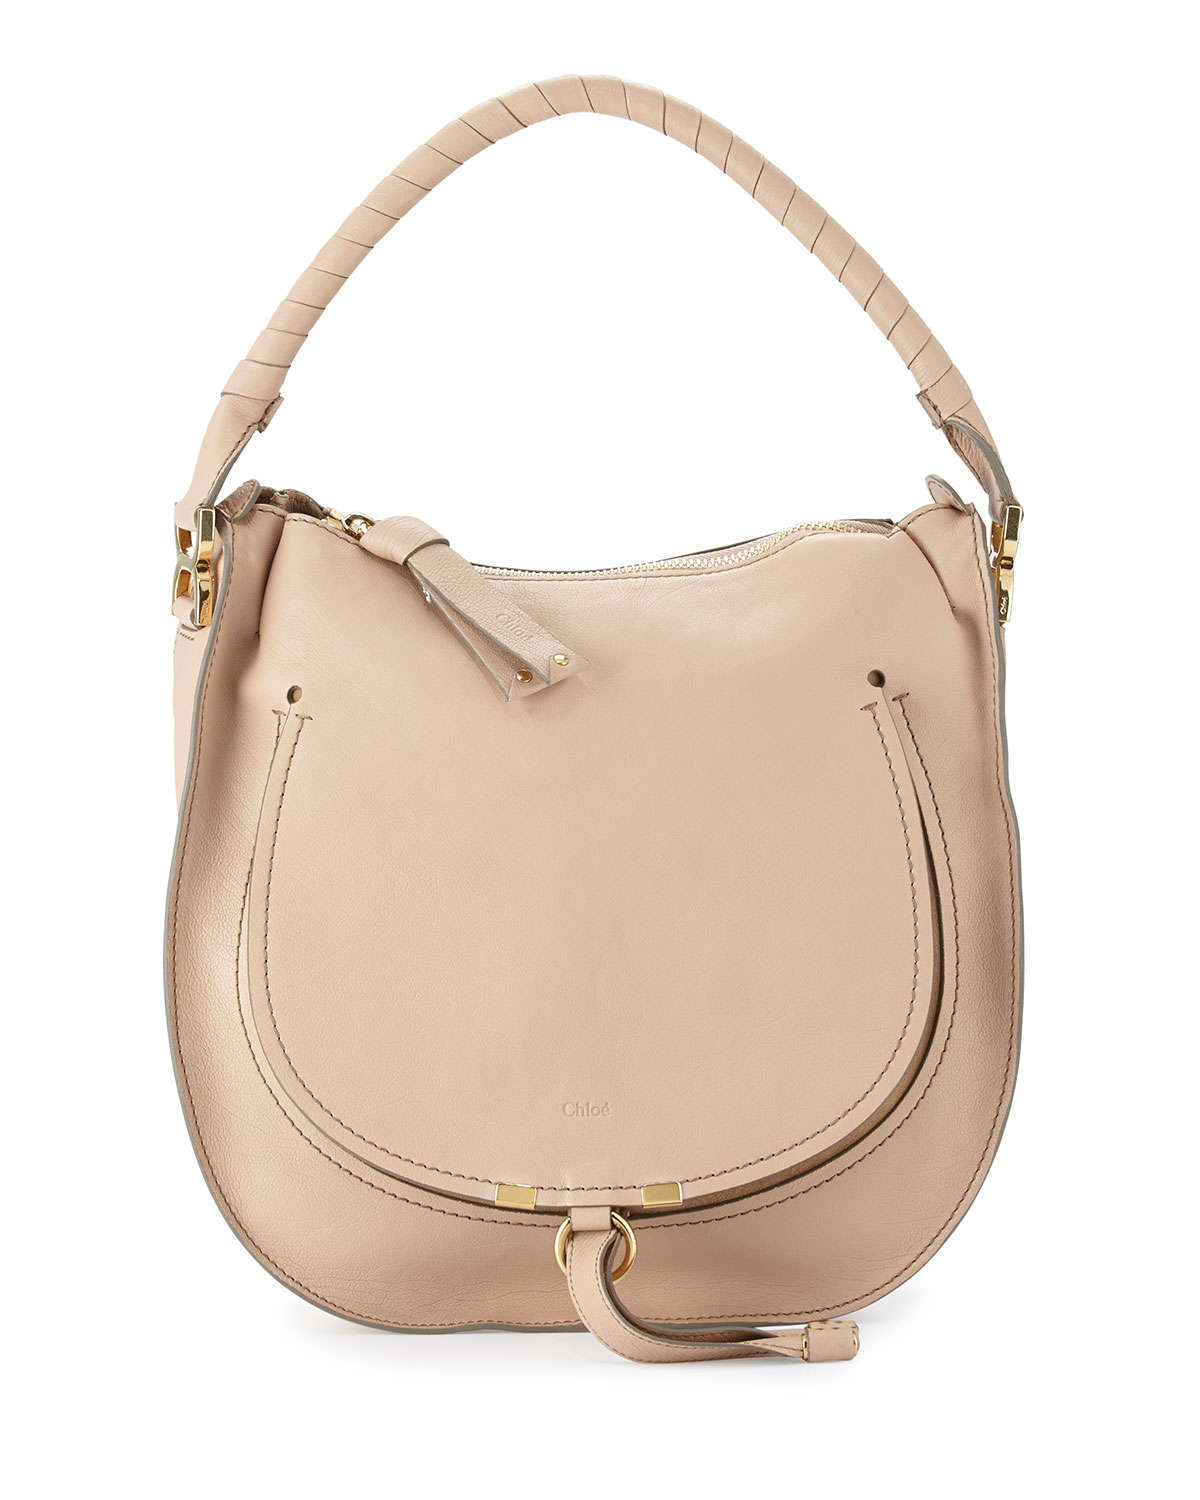 Chlo¨¦ Marcie Leather Hobo Bag in Beige (nude) | Lyst